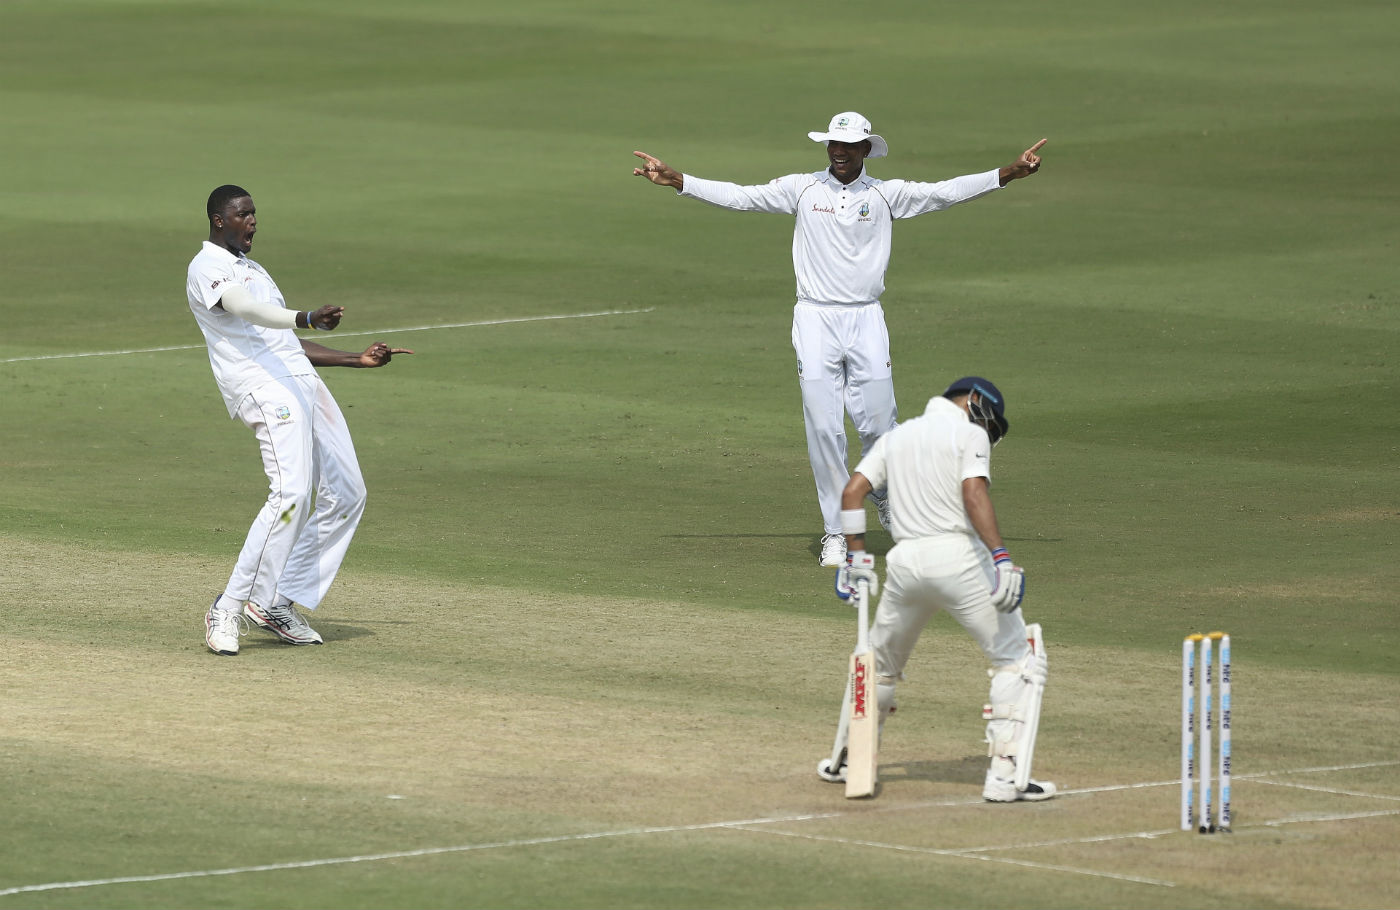 India Vs West Indies 2nd Test Day 2 Highlights